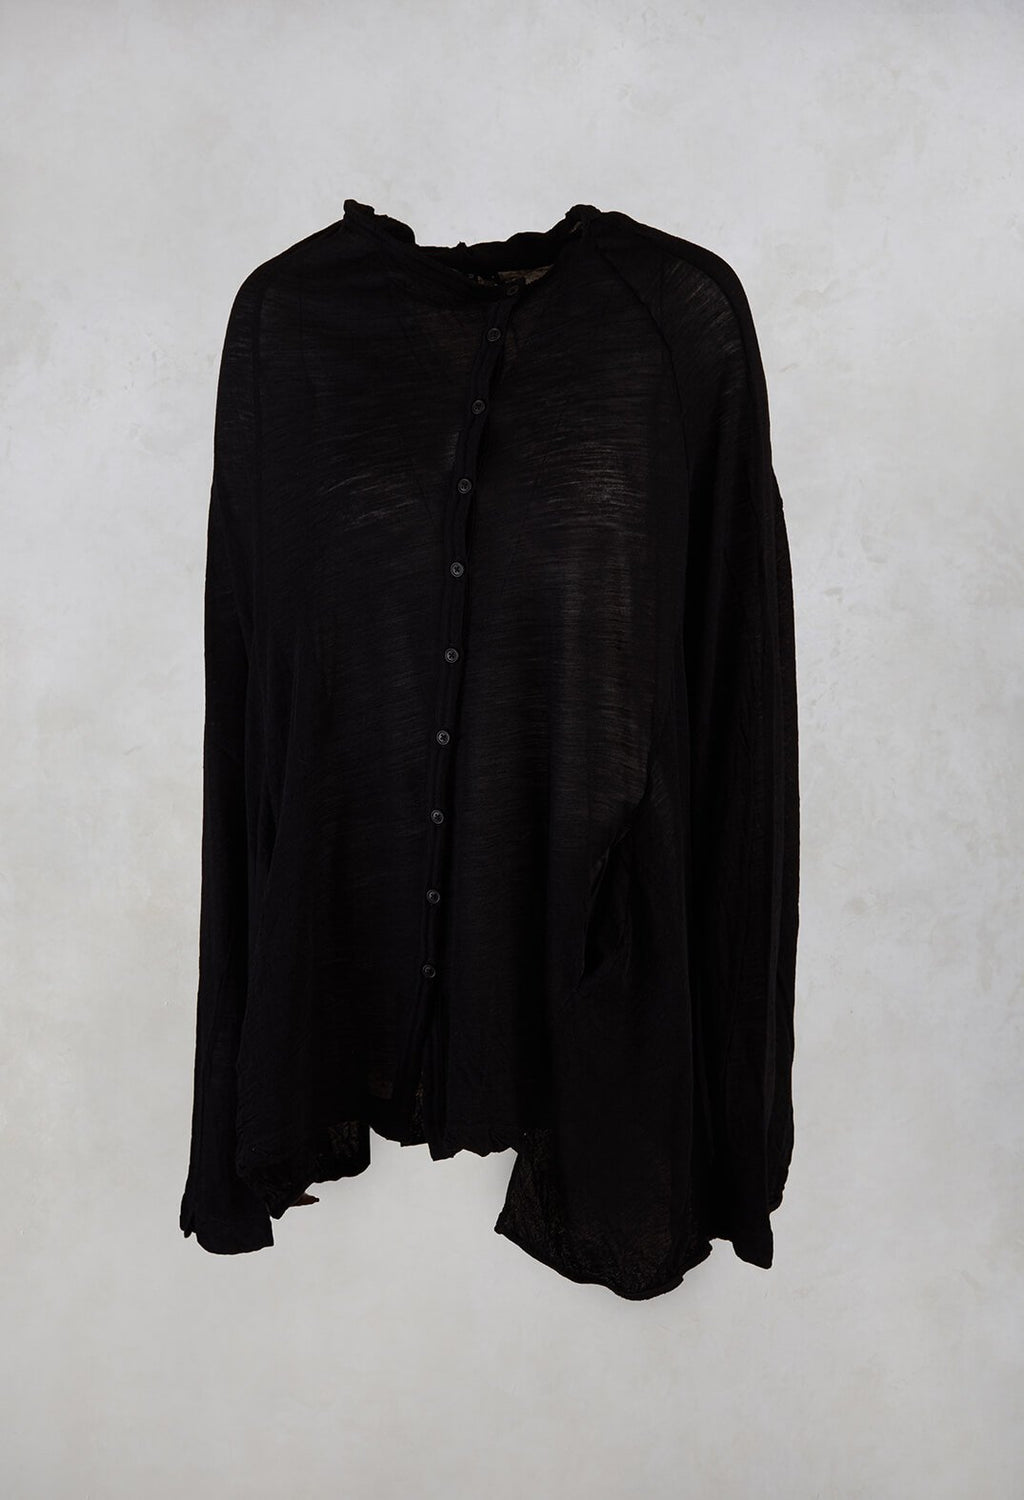 Fine Knit Cardigan in Black